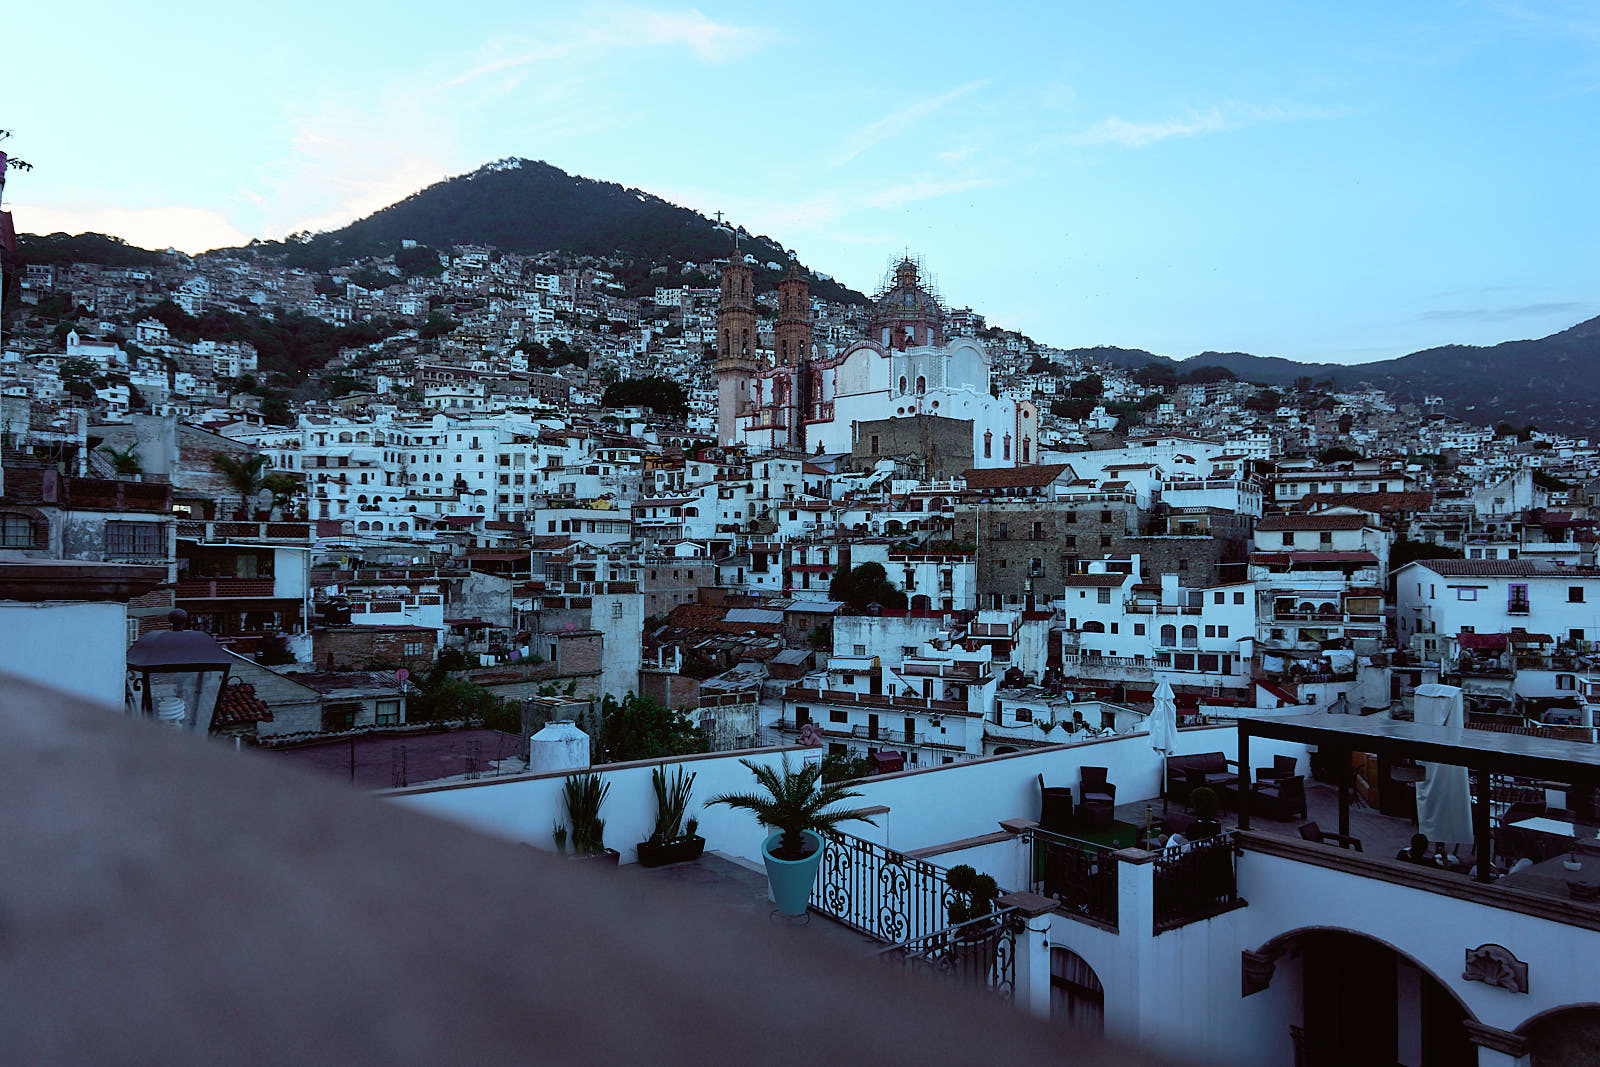 Gorgeous landscape of Taxco, Mexico